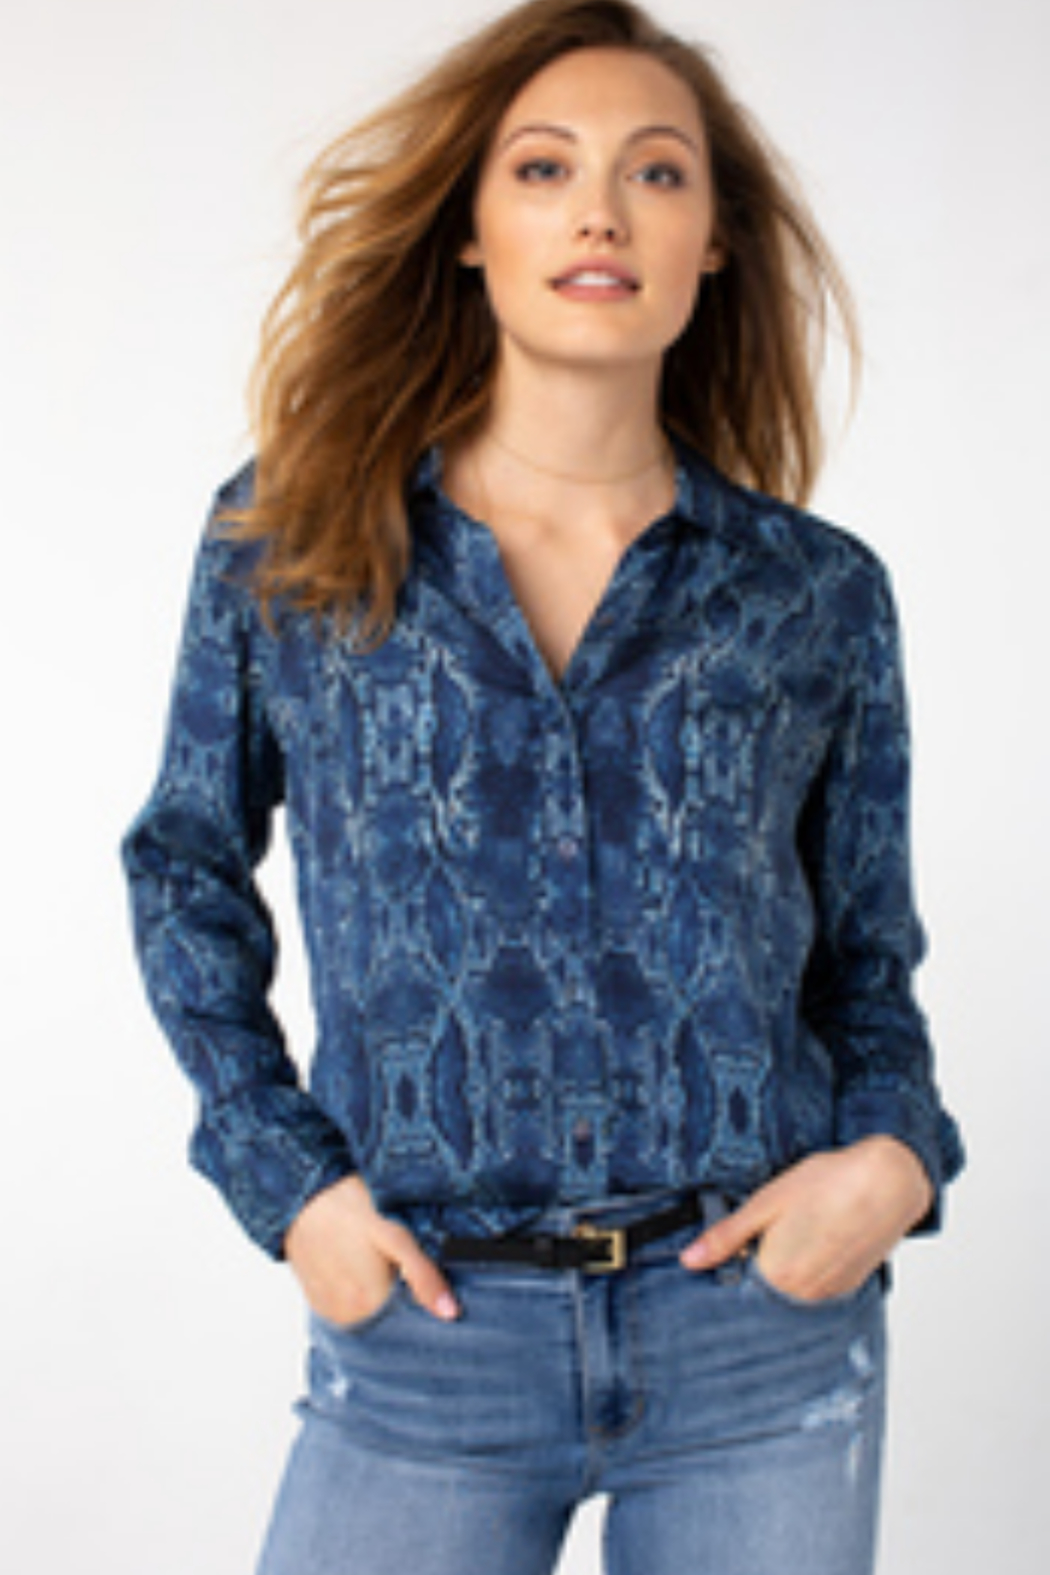 Liverpool  Button up blue woven snakeskin print blouse LM8332G69P9 - Main Image